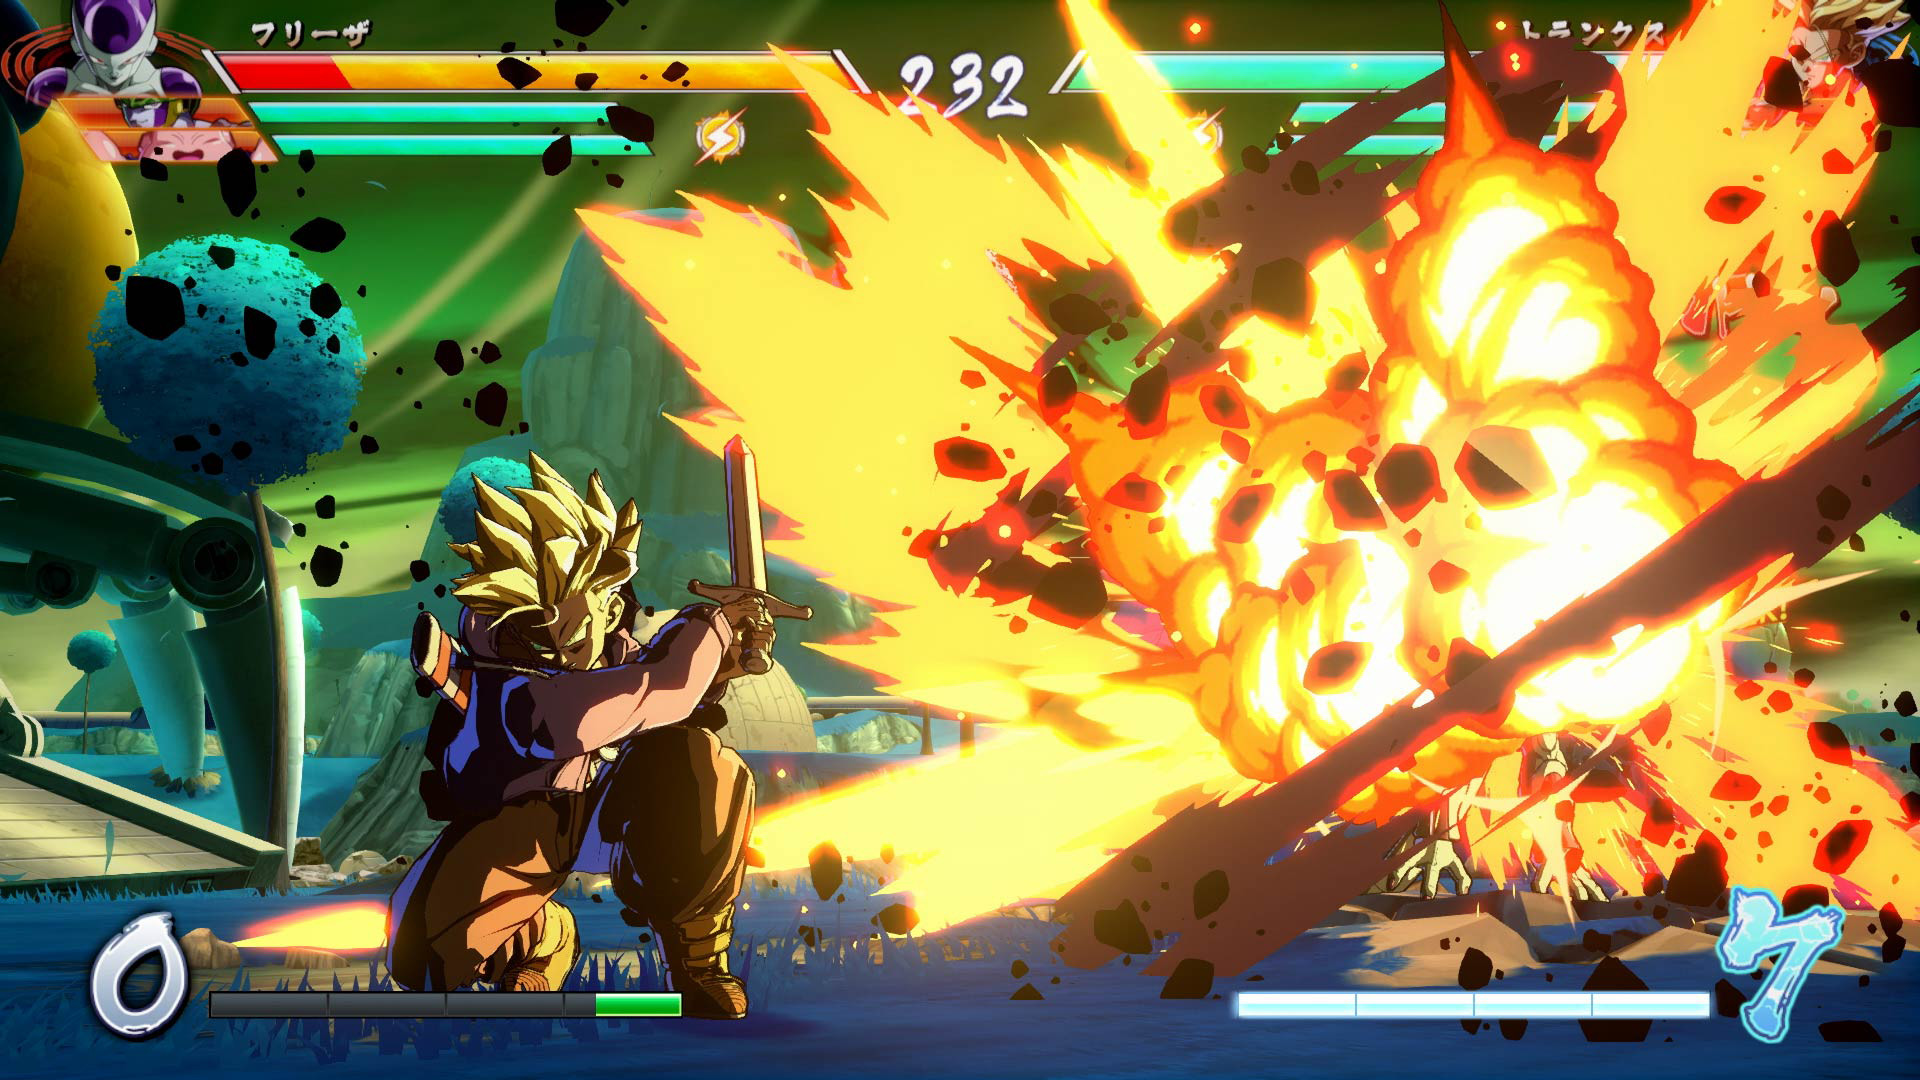 Dragon Ball FighterZ Last Beta on Xbox One